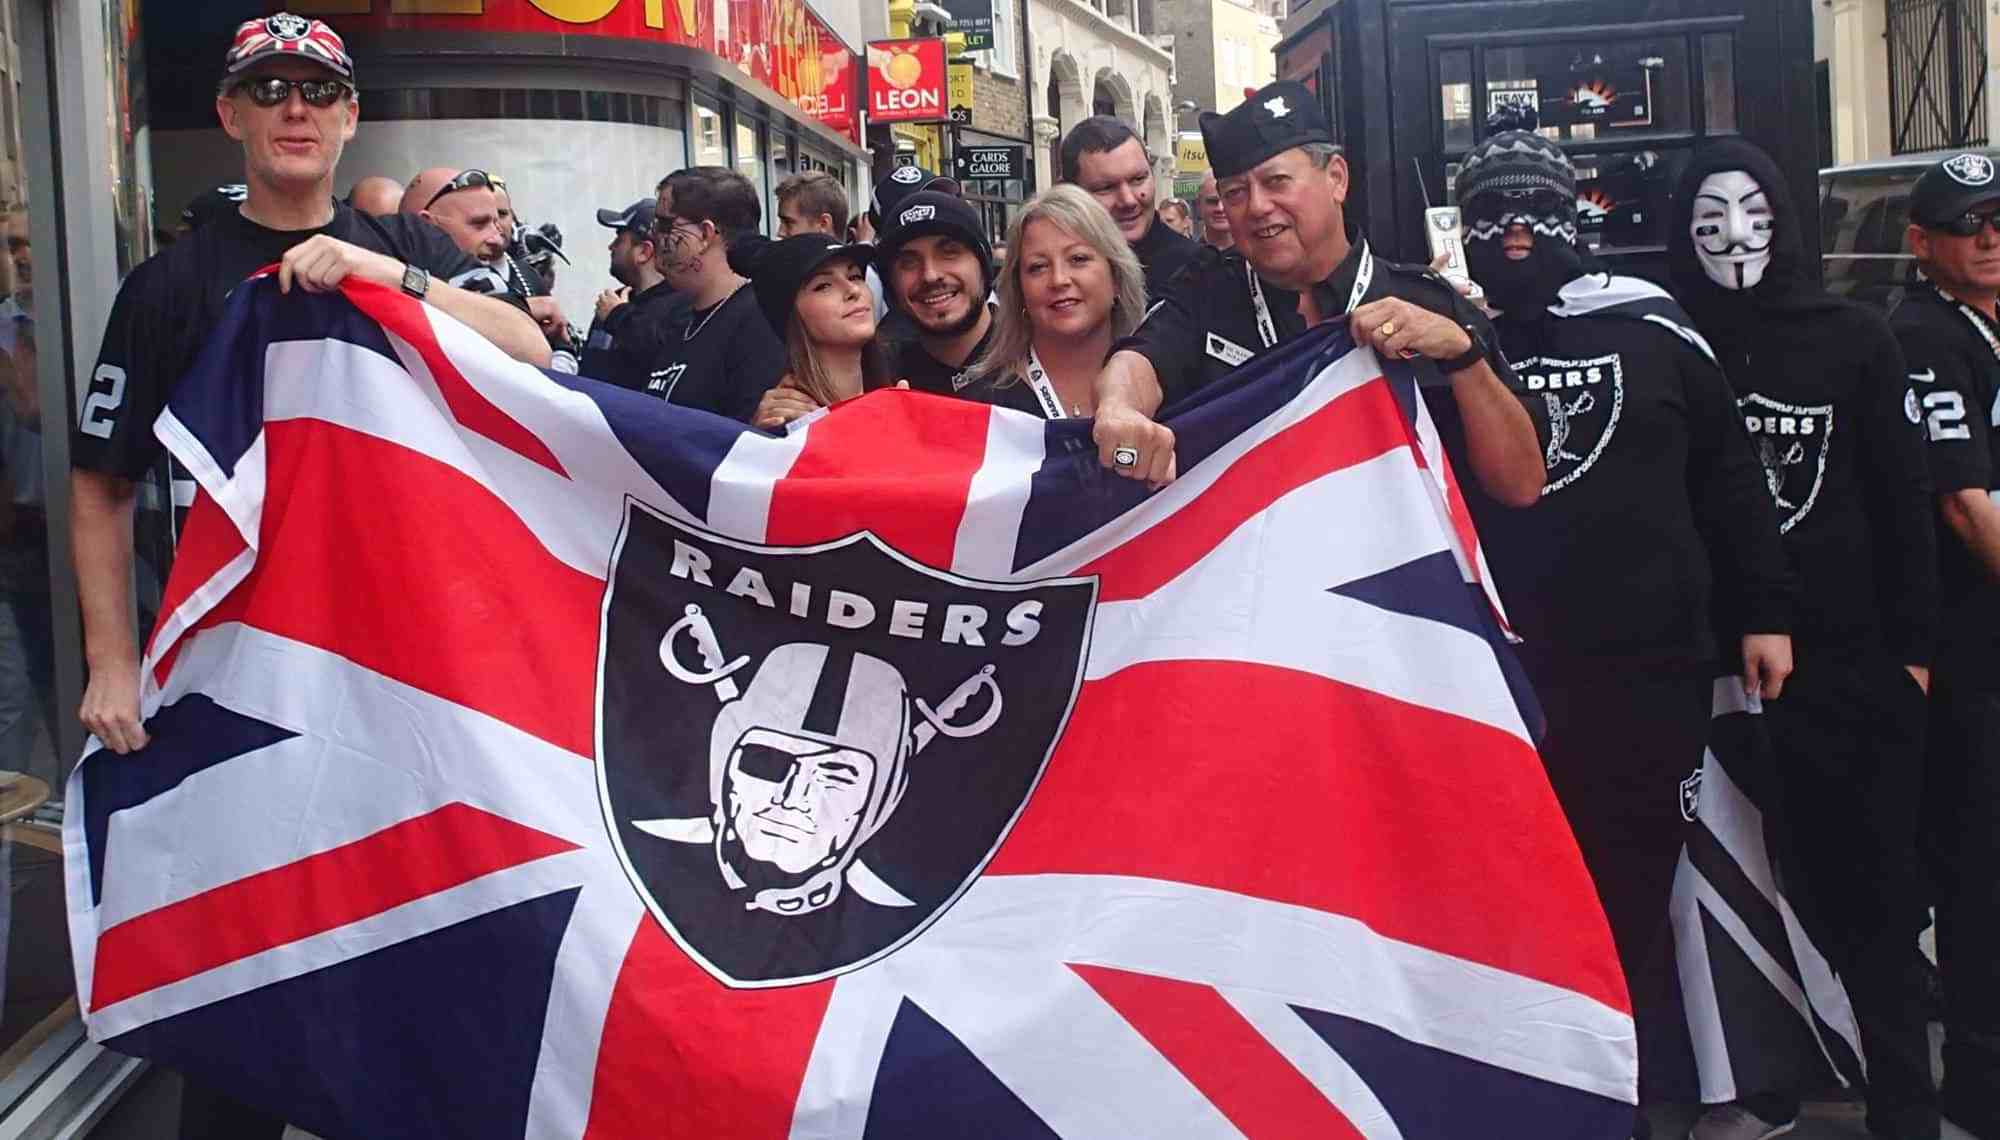 image-of-oakland-raider-nfl-uk-football-fans-in-london-england